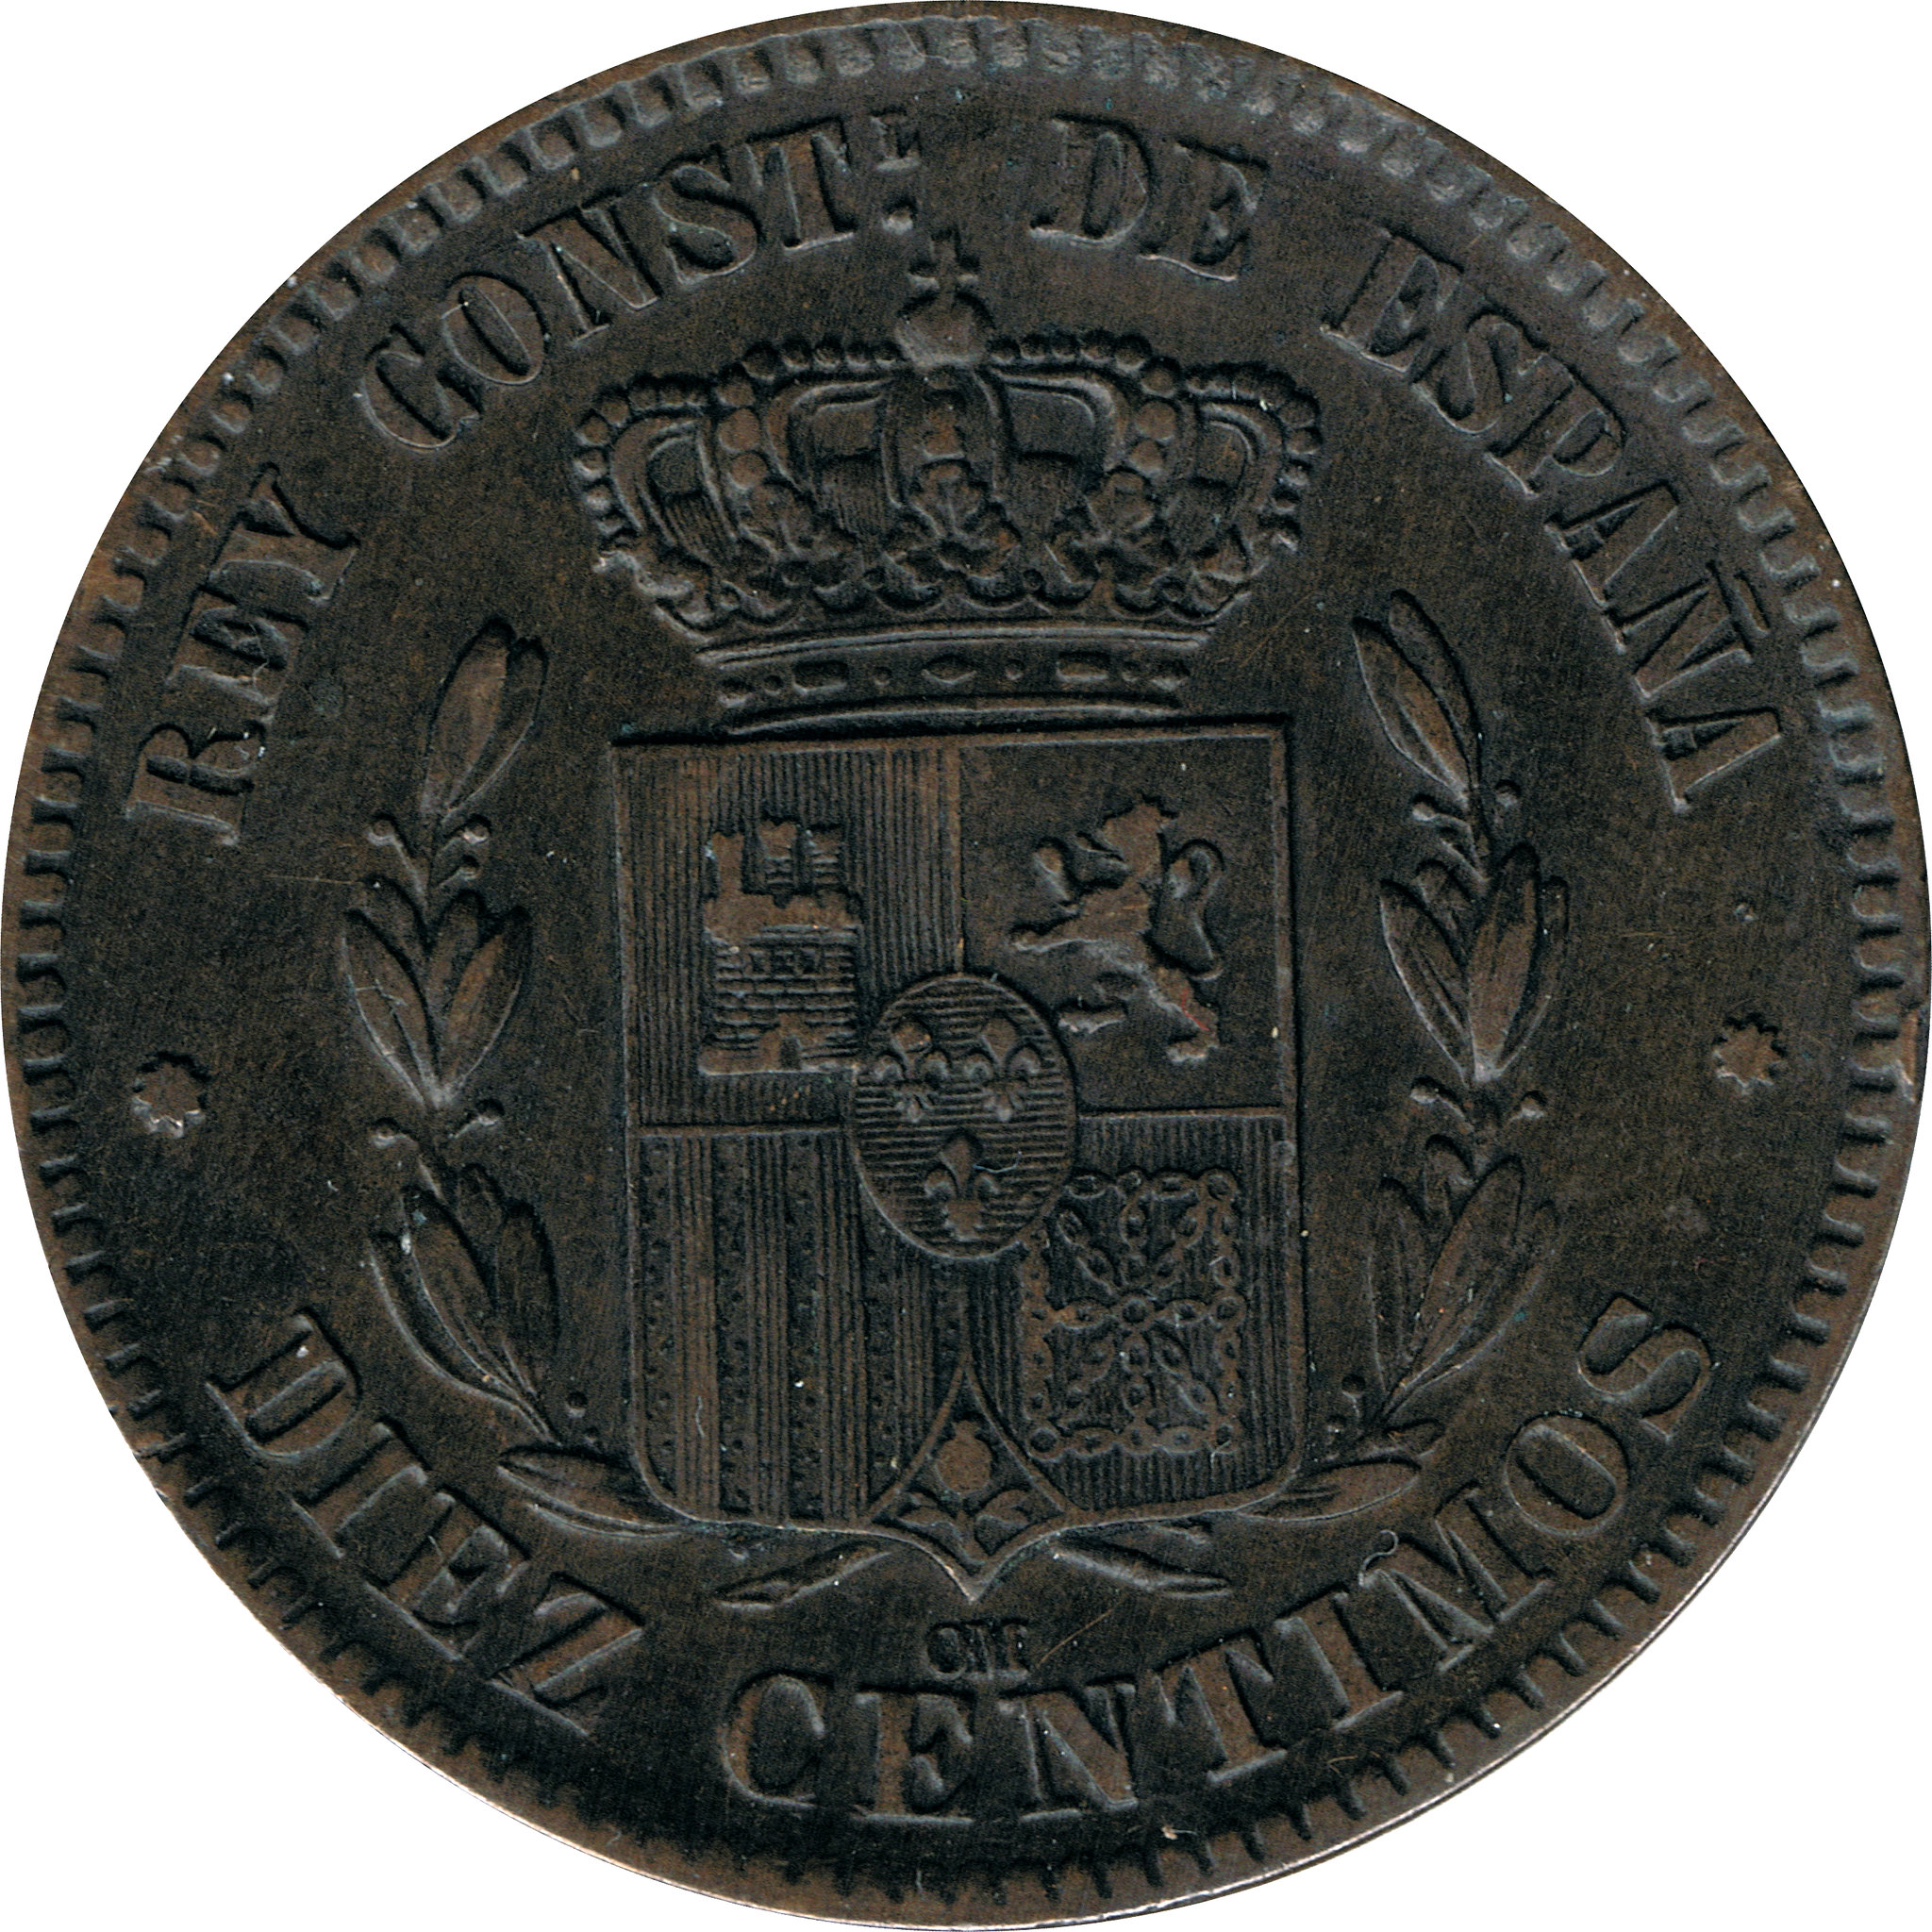 10 Centimos Alfonso XII 1879 8721191784_5d8127eed2_k